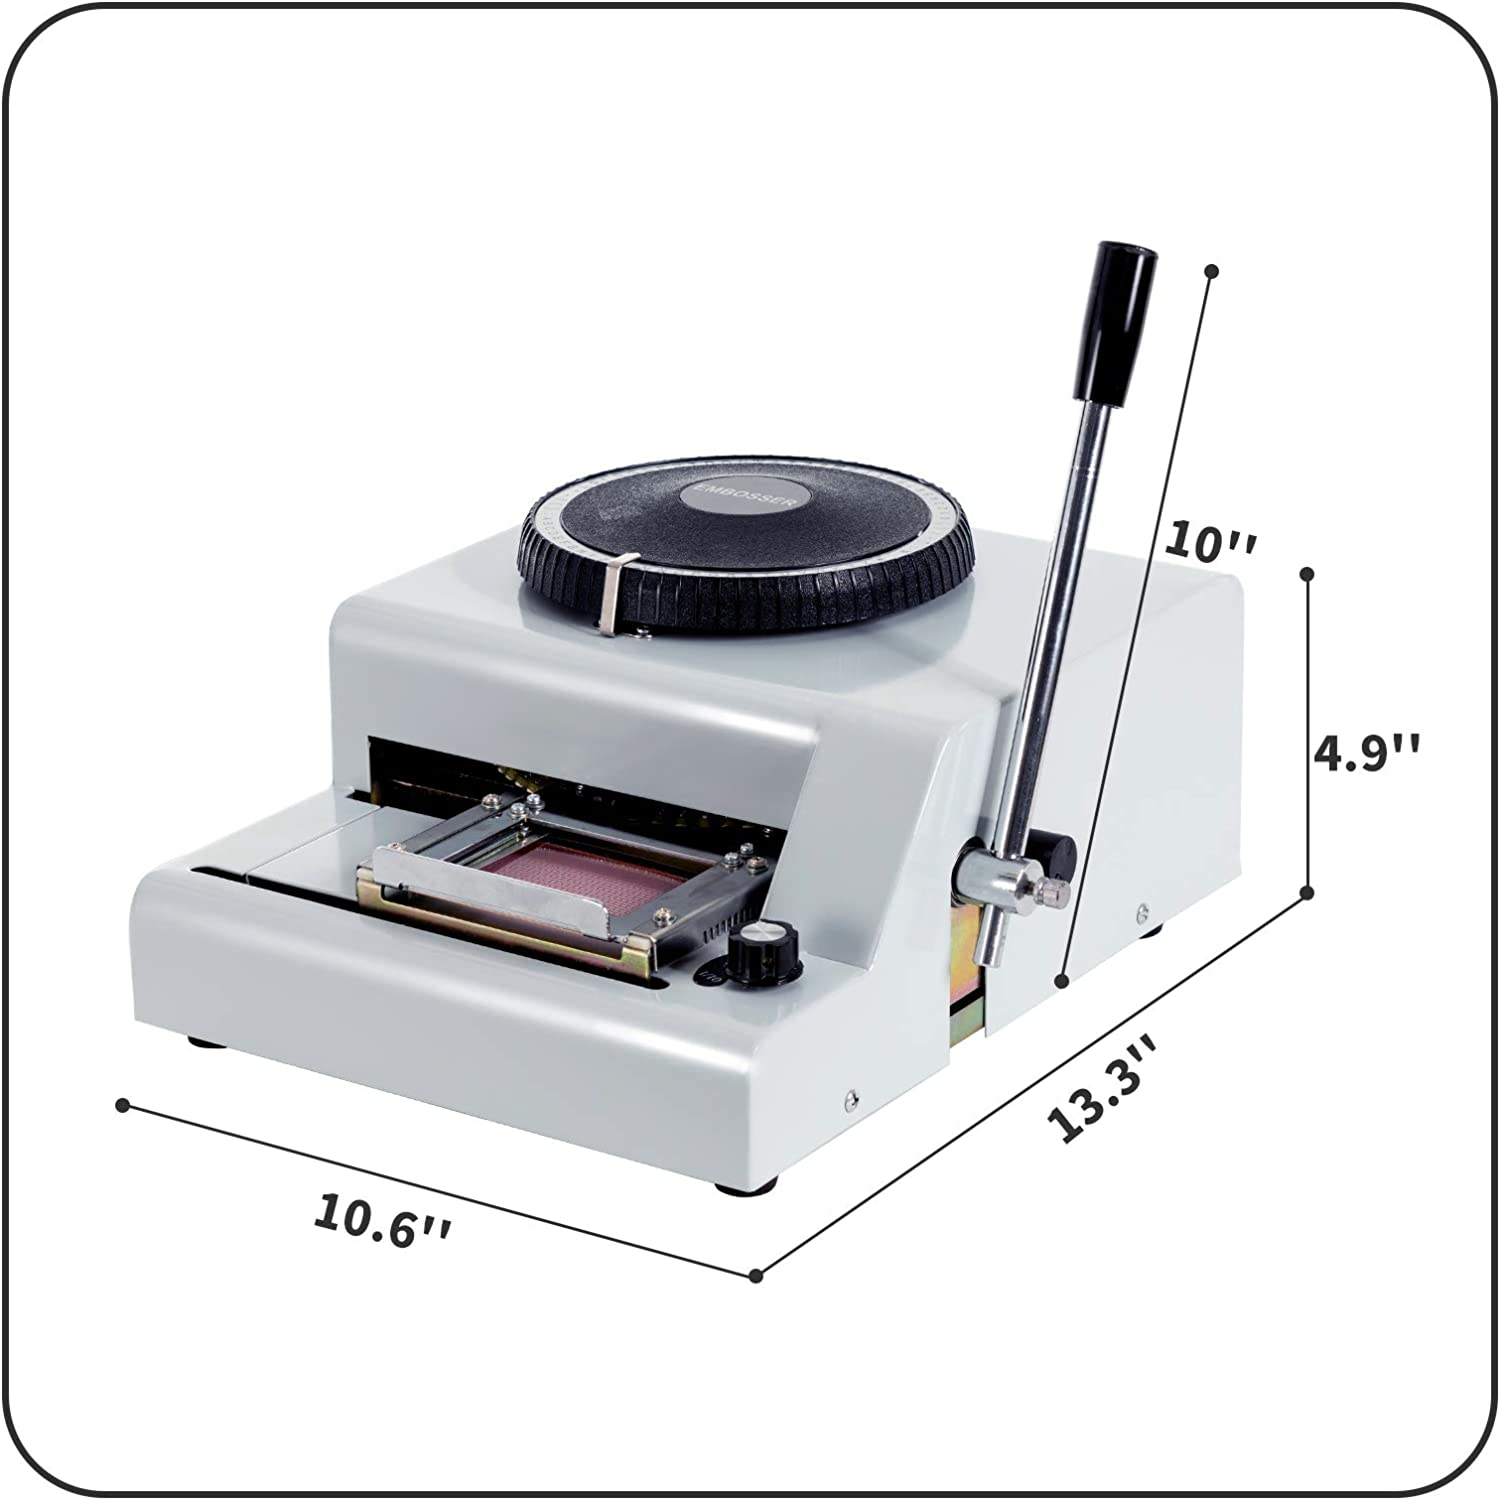 Embossing Machine 66 Characters Card Embosser Printer Gift Card Credit ID PVC Card Embosser Stamping Machine Manual Embosser Machine